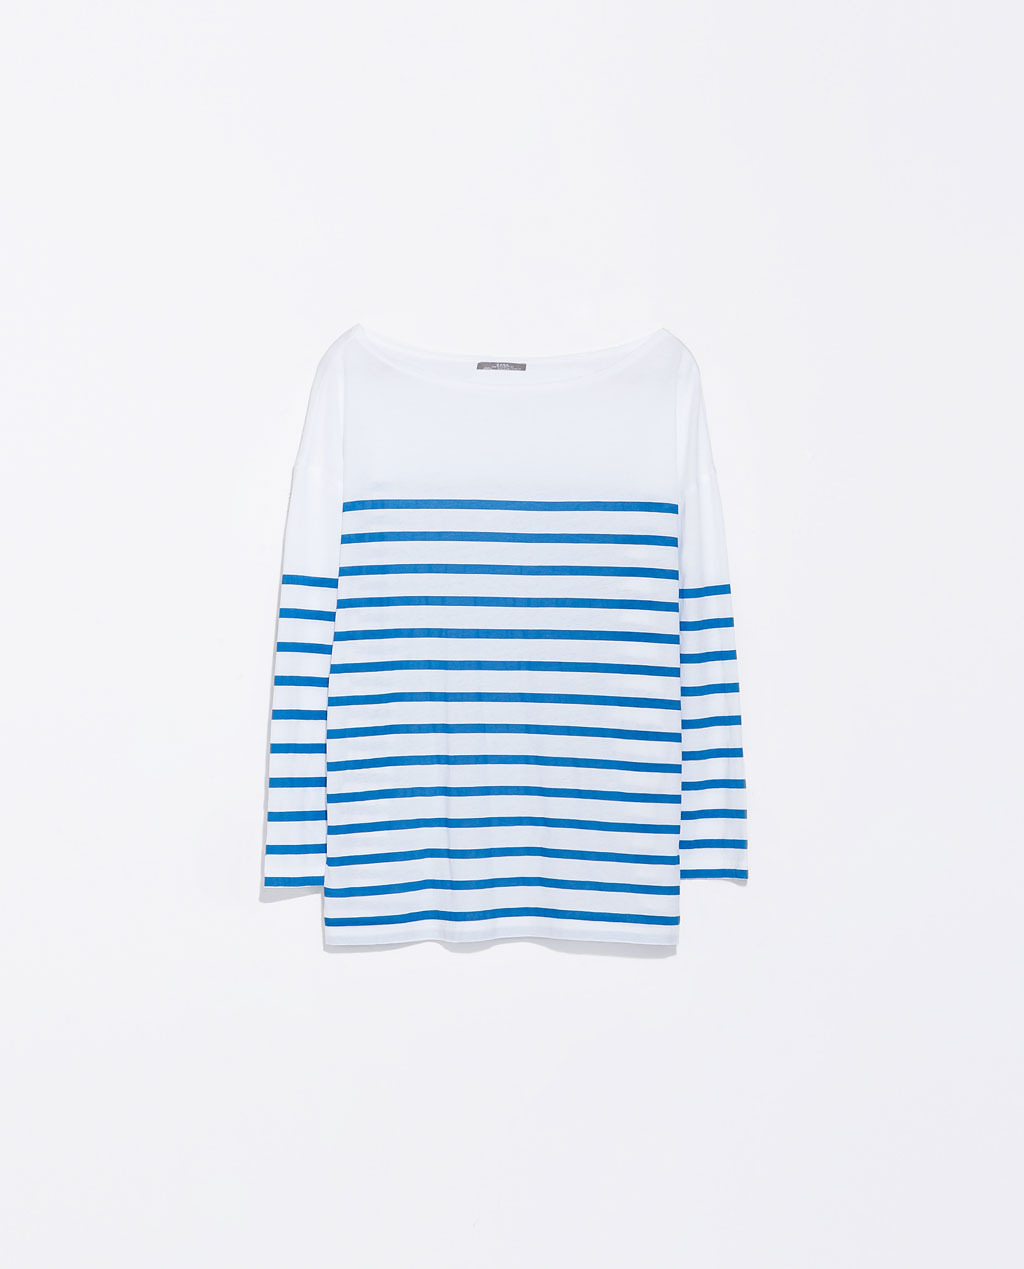 Striped T Shirt - neckline: slash/boat neckline; pattern: horizontal stripes; predominant colour: white; secondary colour: diva blue; occasions: casual, creative work; length: standard; style: top; fibres: cotton - 100%; fit: straight cut; sleeve length: 3/4 length; sleeve style: standard; pattern type: fabric; pattern size: light/subtle; texture group: jersey - stretchy/drapey; season: s/s 2014